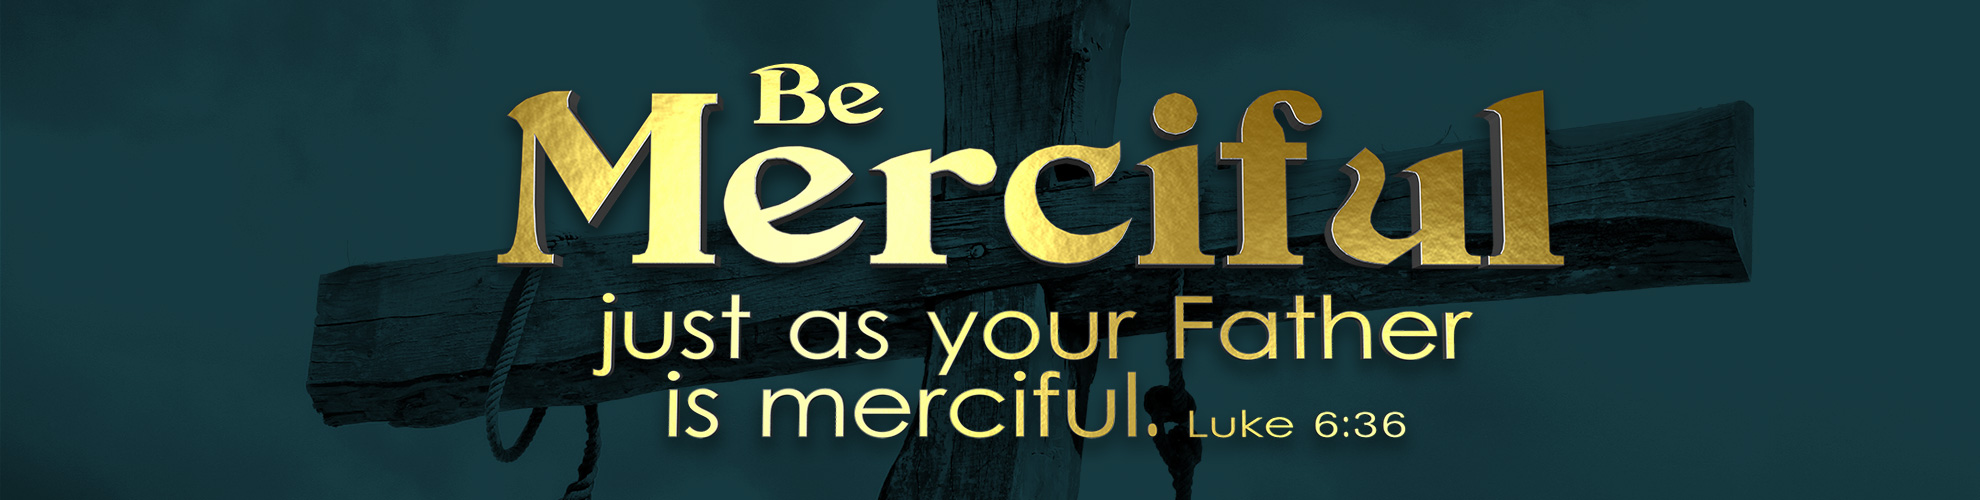 Merciful-Homepage-Banner